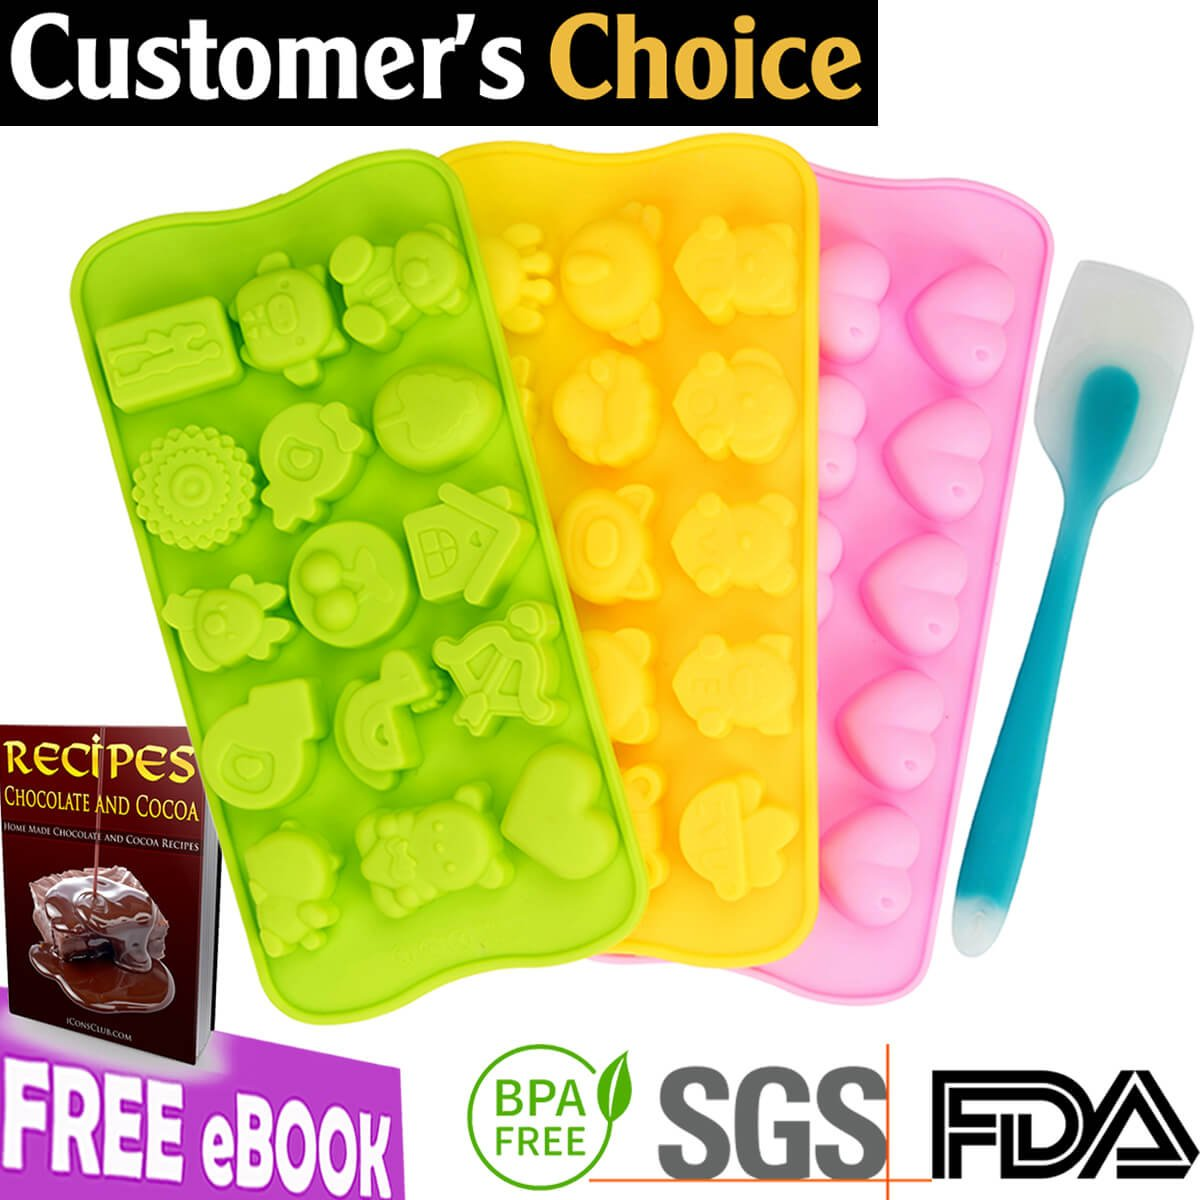 [FLASH SALE] Silicone Chocolate Candy Molds | Jelly Gummy Pudding Ice Cake Soap Ganache Baking Mold | Bonus eBOOK + Small Bags + Spatula | Non stick BPA free Professional Decorating | Many Cute Shapes